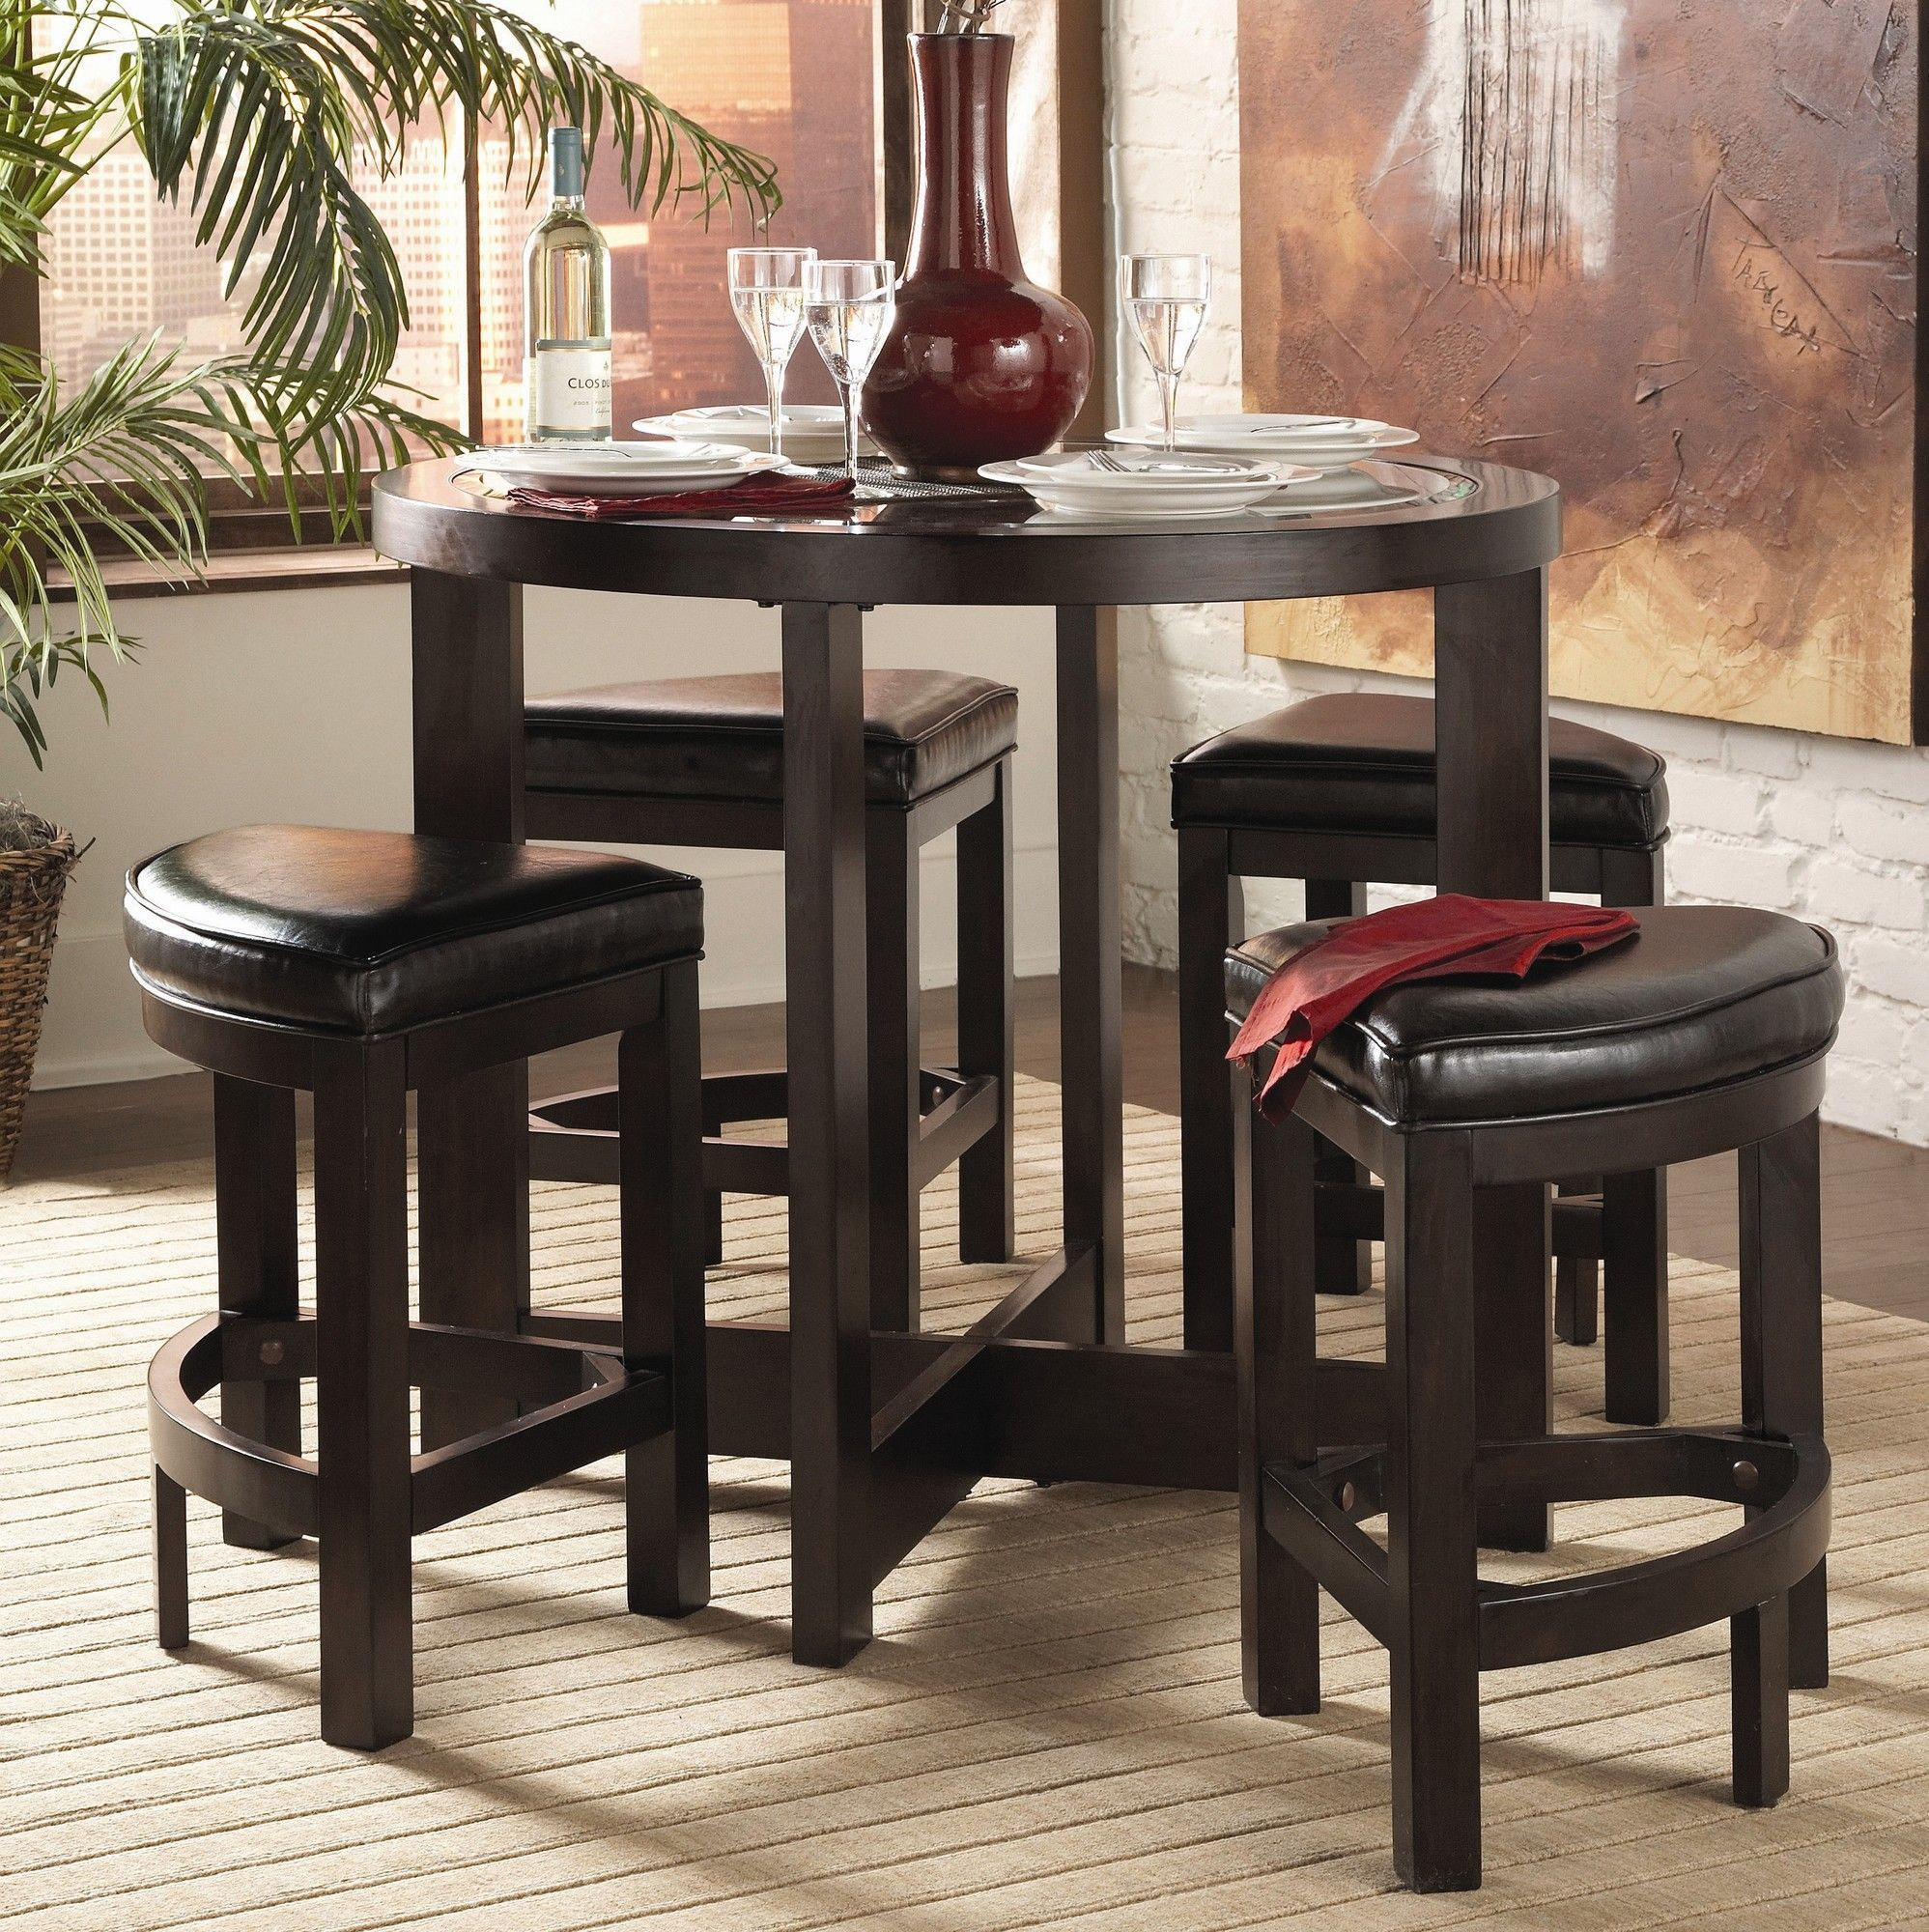 Woodhaven Hill 9 Series 9 Piece Counter Height Dining Set ...